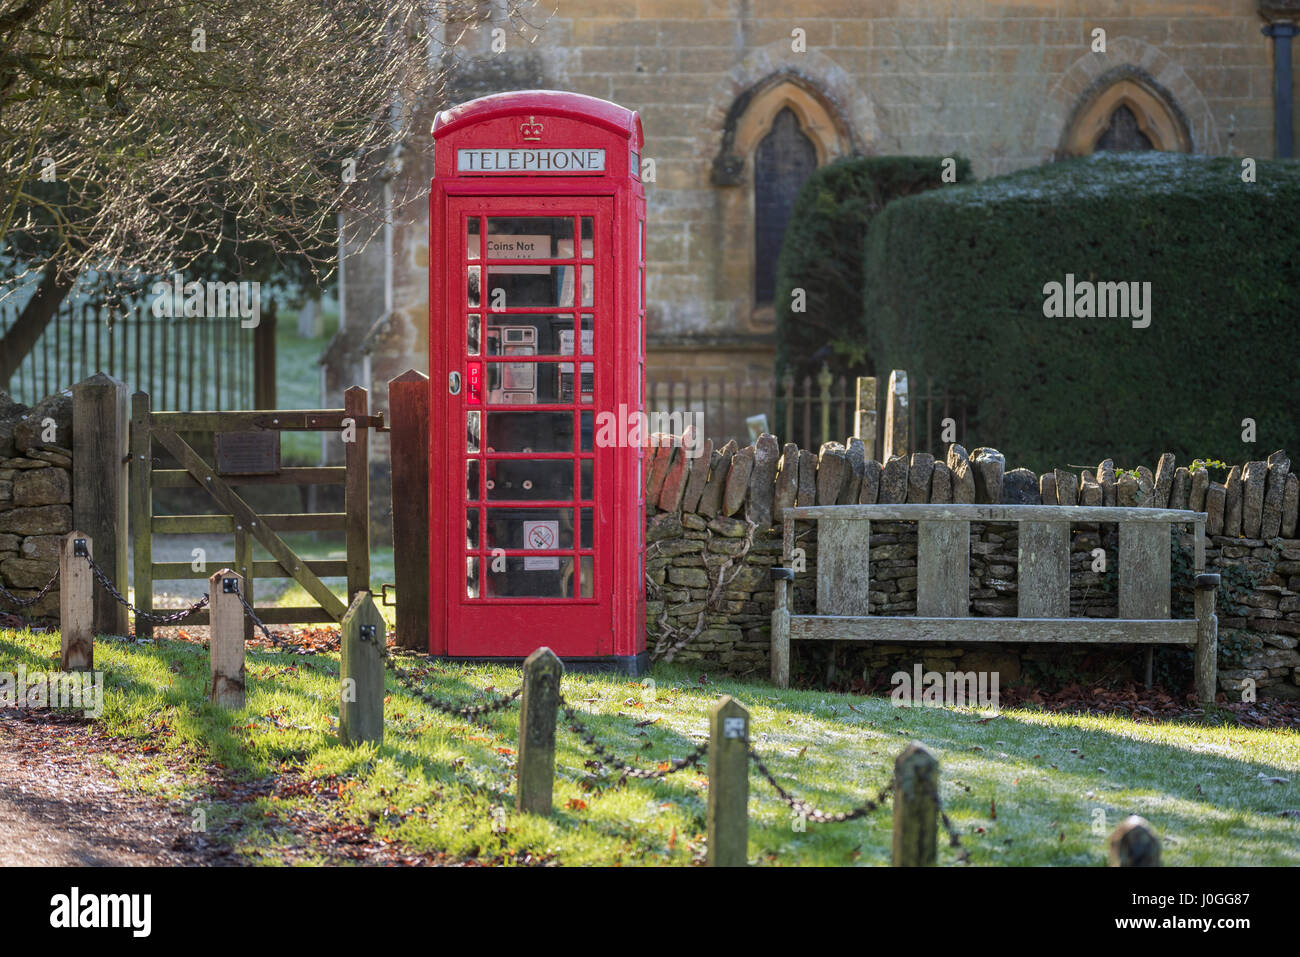 K6 telephone kiosk at Snowshill in Gloucestershire, England - Stock Image